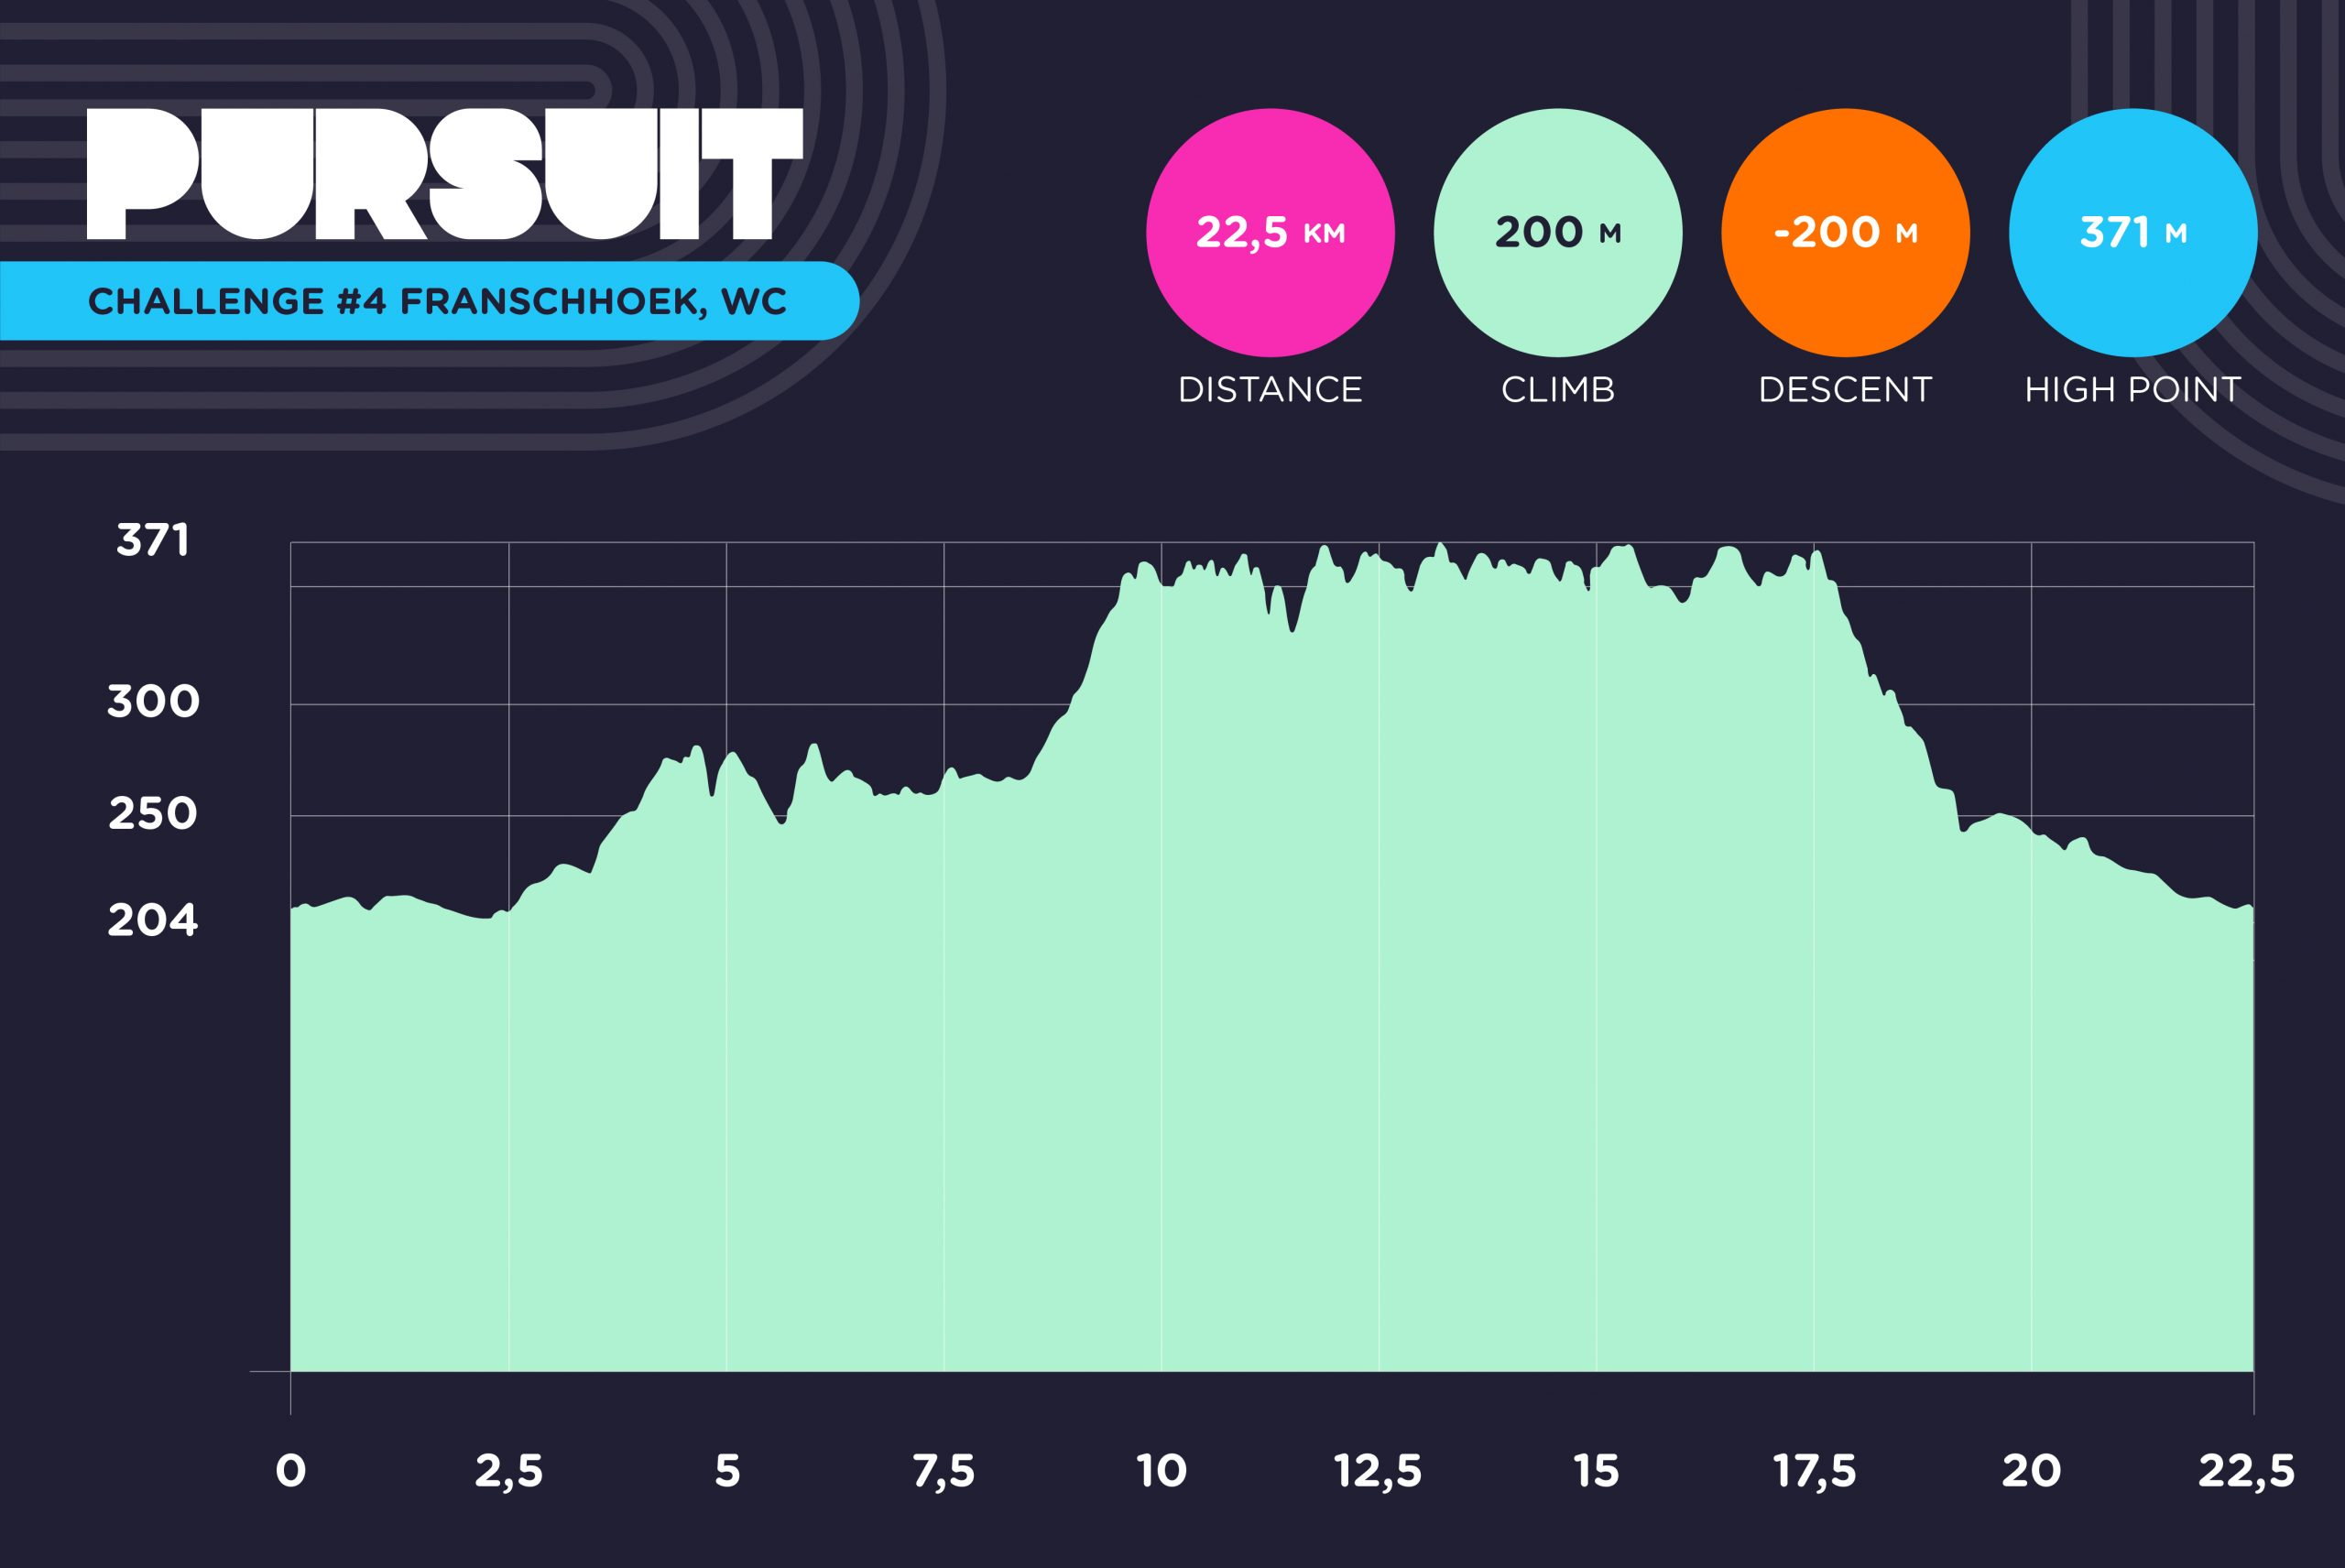 Pursuit Challenge Franschhoek Elevation